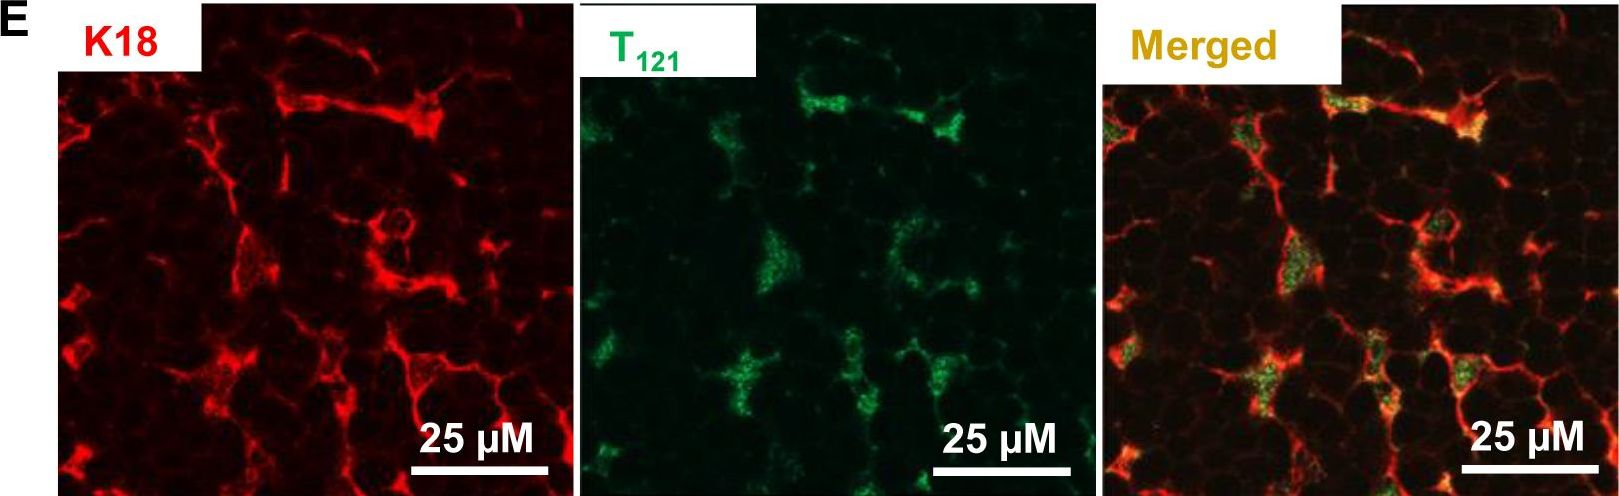 RB inactivation in keratin 18 positive thymic epithelial cells promotes non-cell autonomous T cell hyperproliferation in genetically engineered mice.